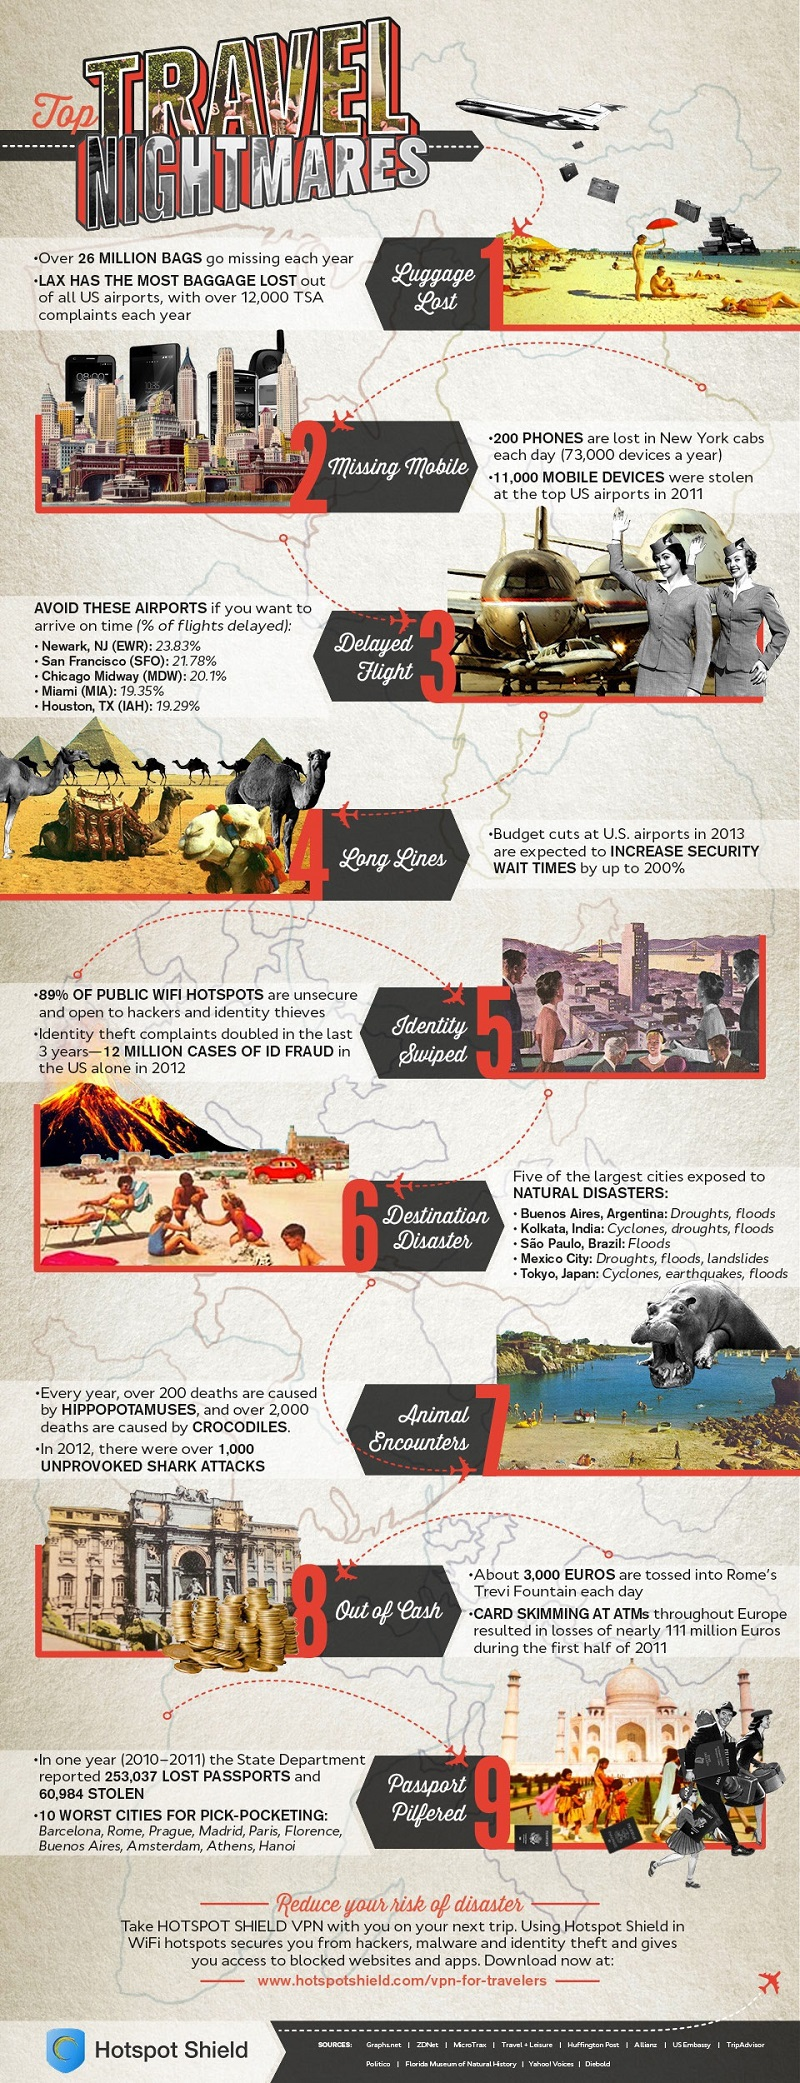 Top Travel Nightmares Infographic